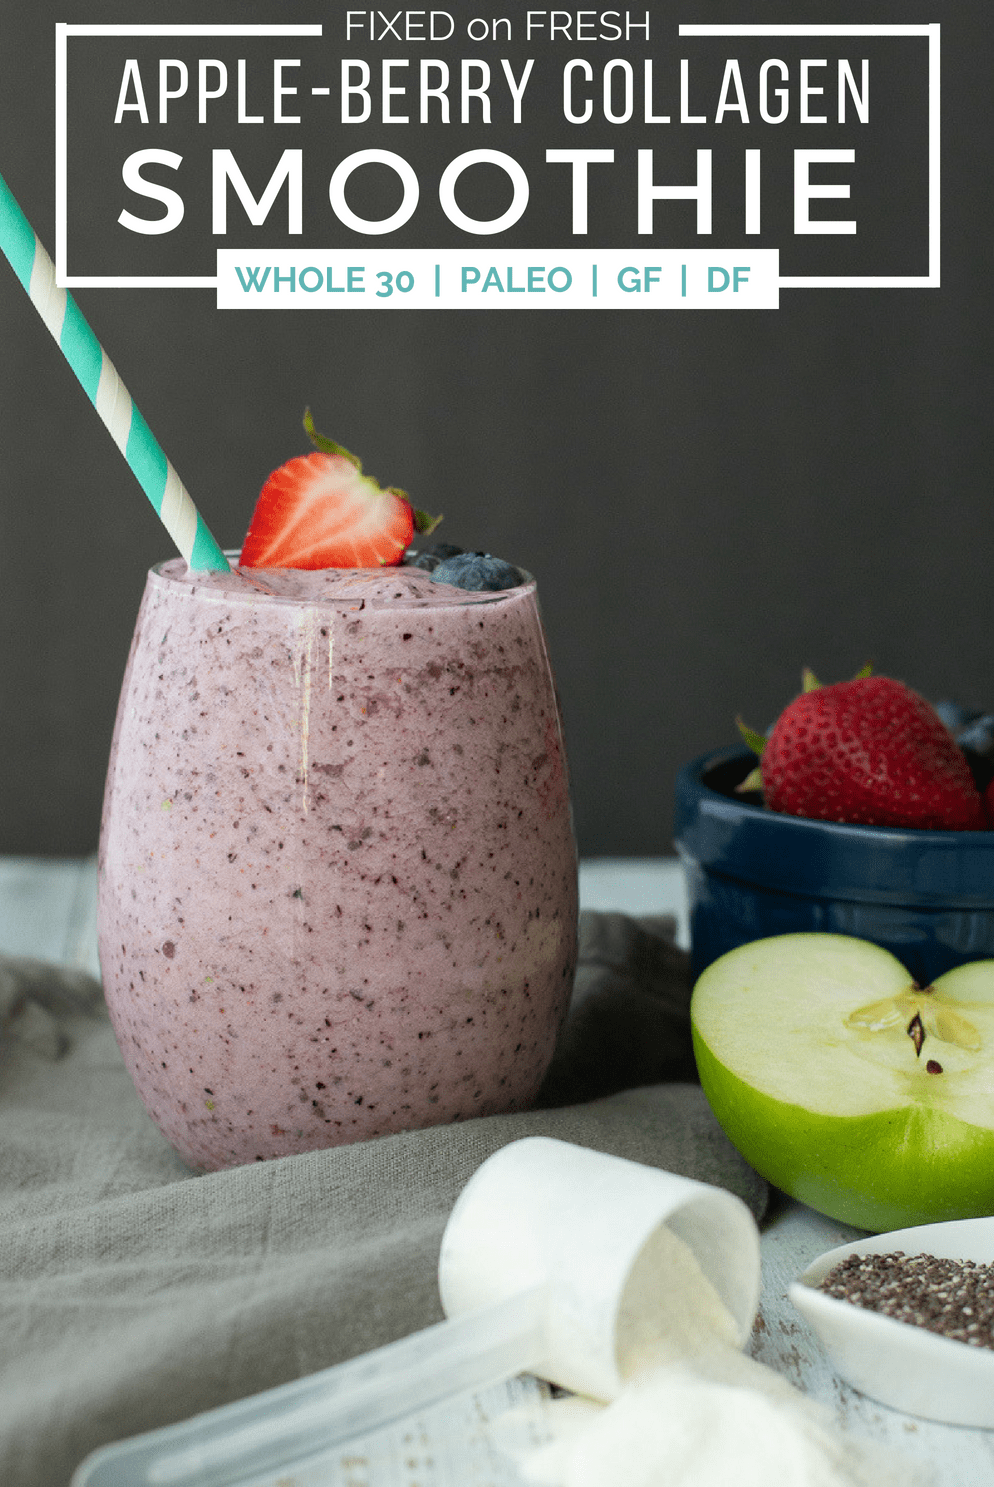 Apple-Berry collagen smoothie recipe makes for a healthy breakfast on the go. This high fiber breakfast will take 5 minutes to make and keep you full all morning!